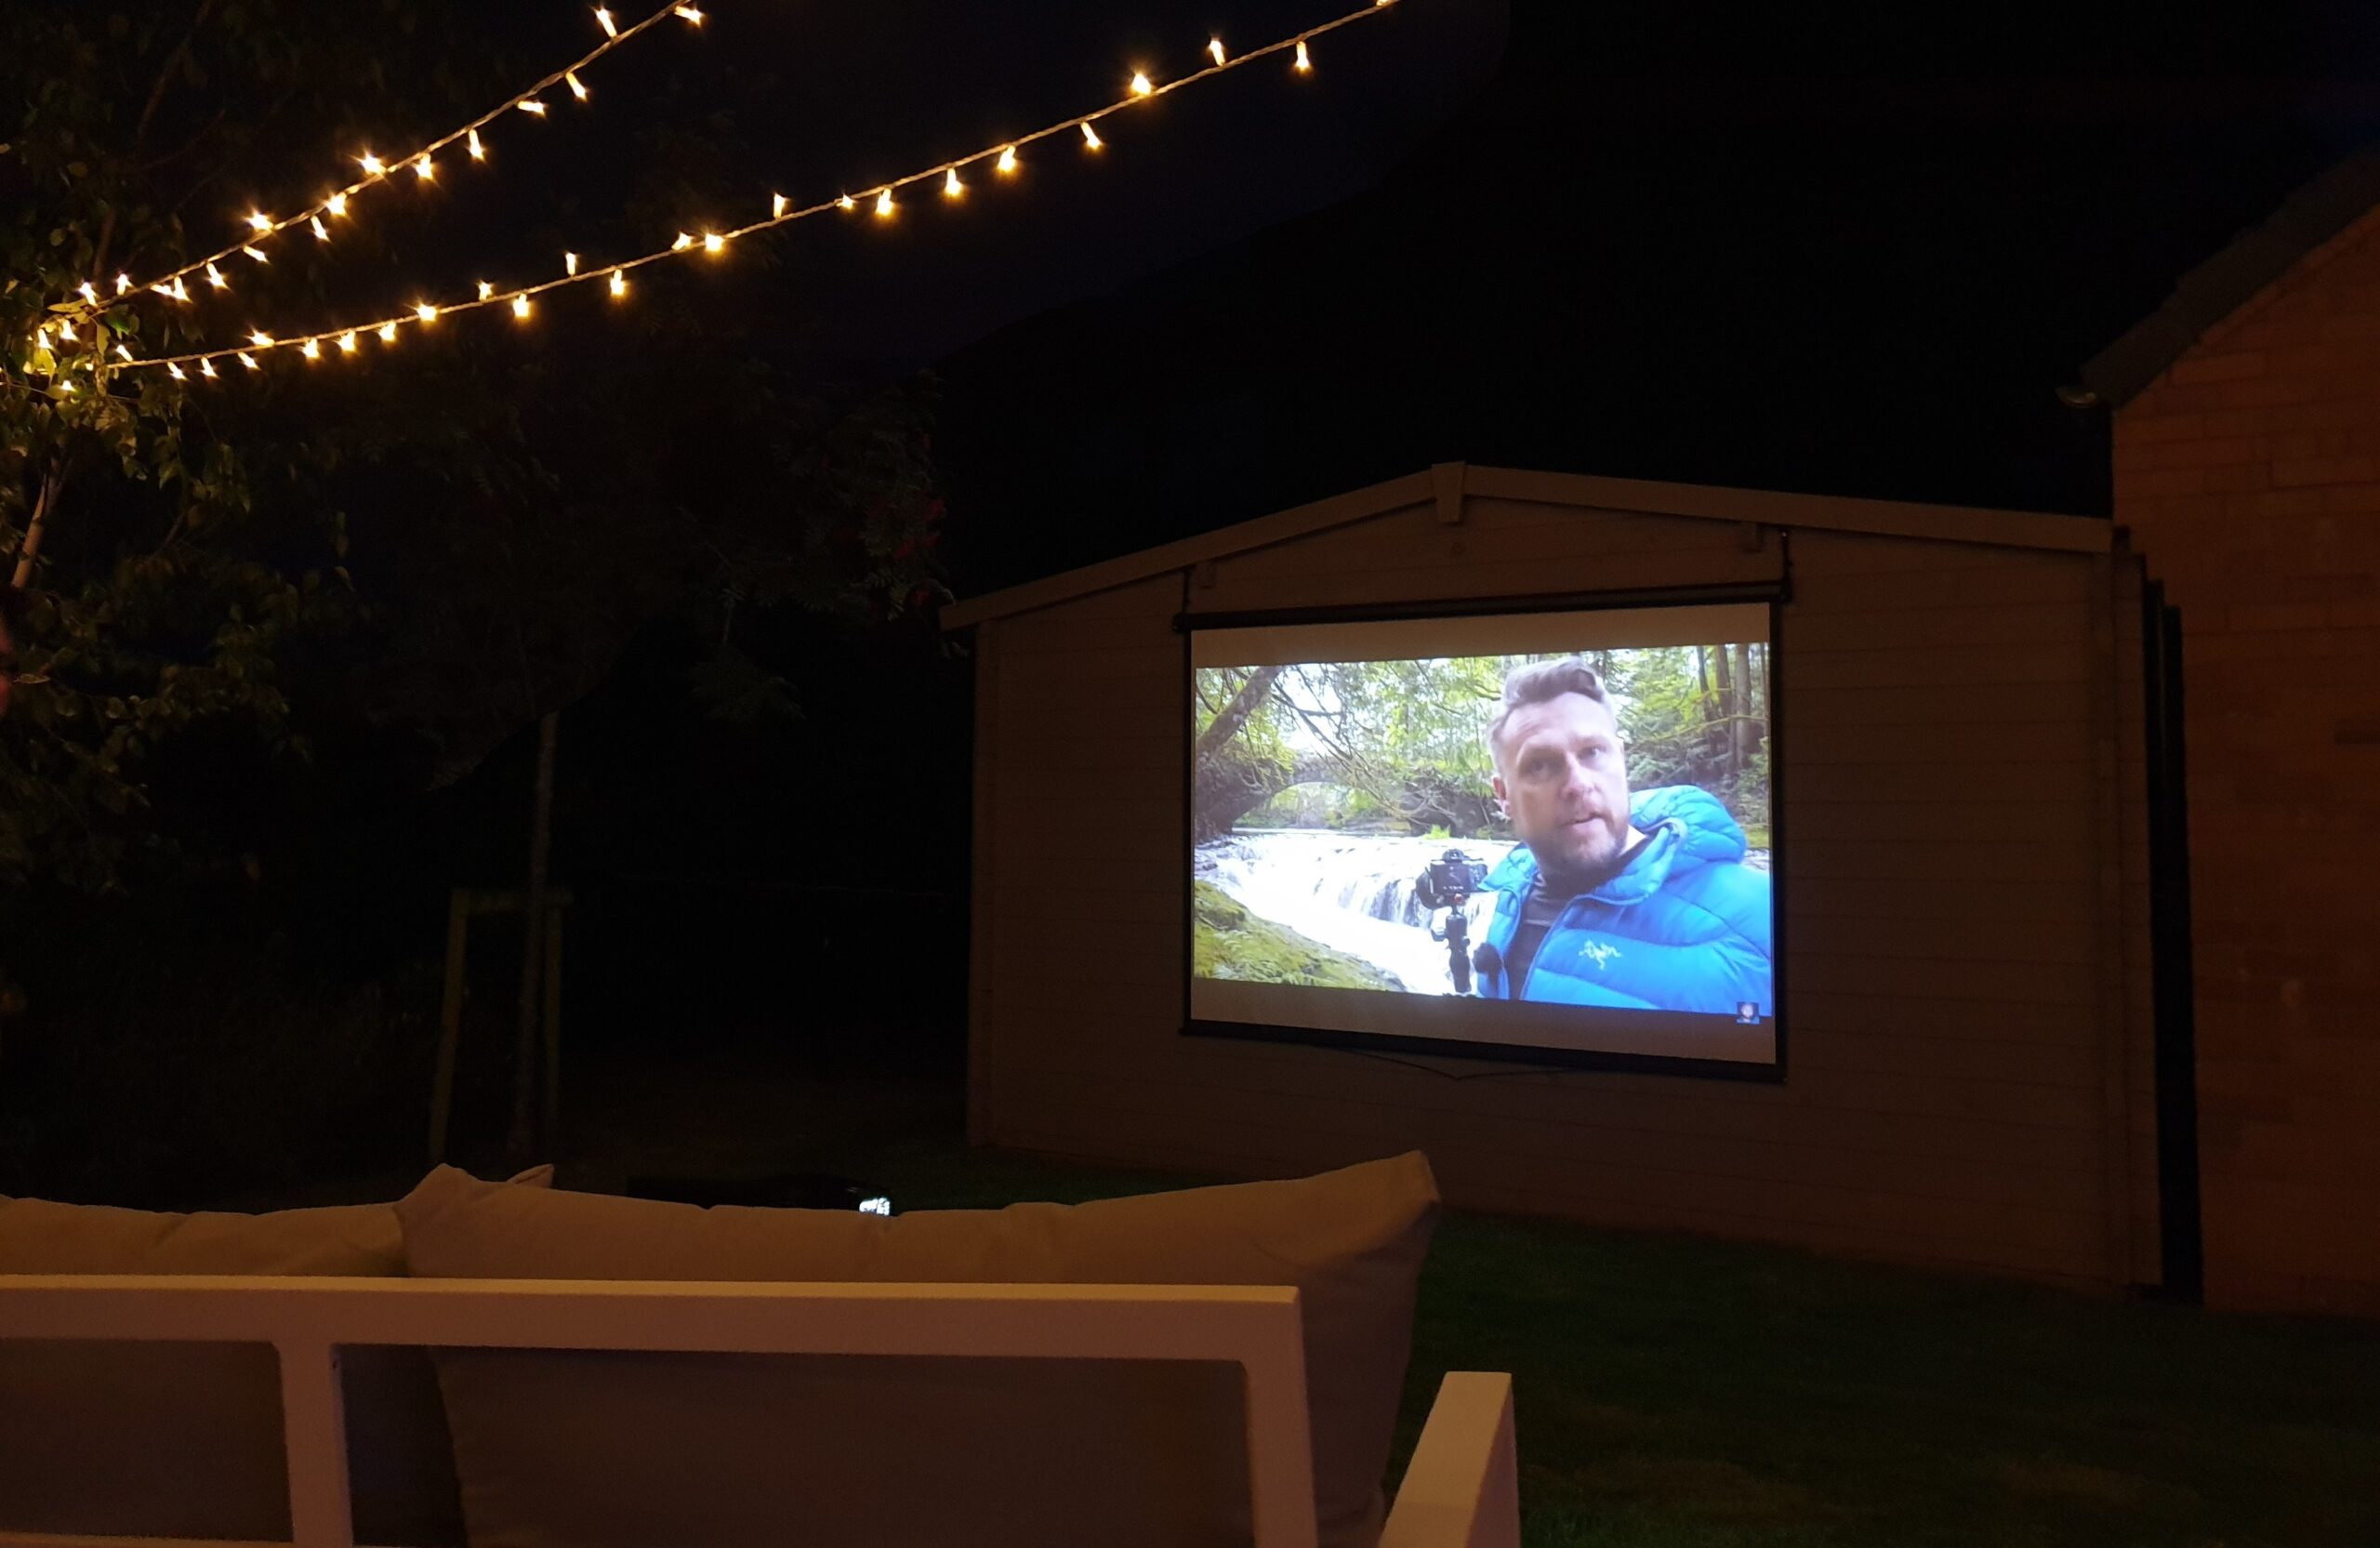 Outdoor Cinema Hire Southampton Exeter - Projector and Screen Rental